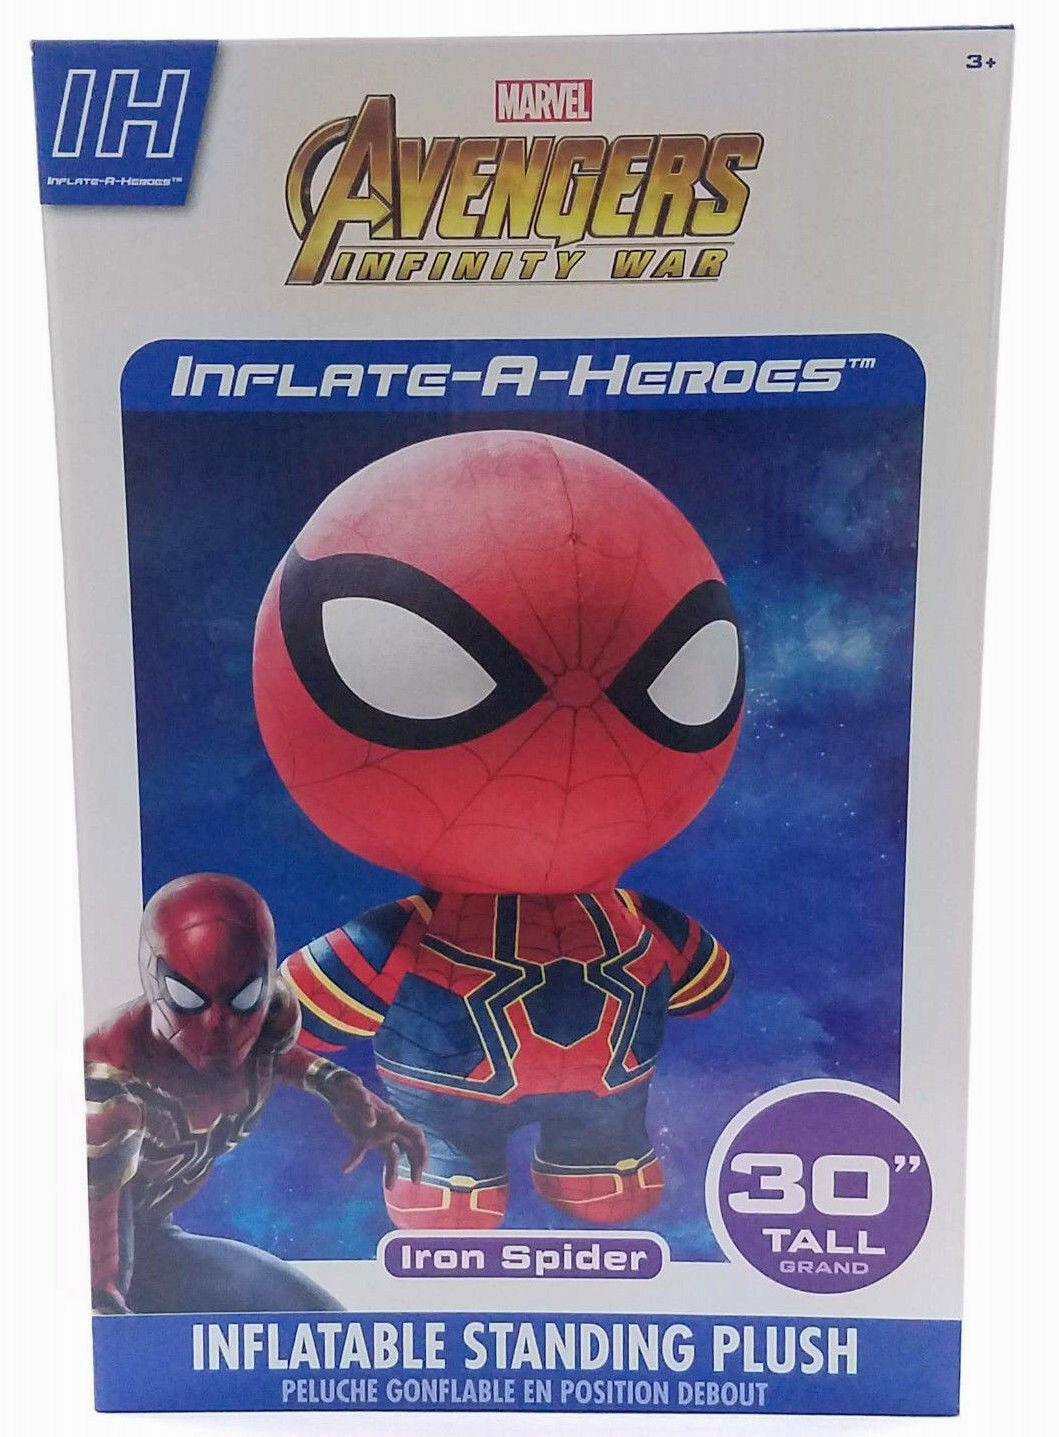 Marvel Infinity guerras Iron Spider Inflate-A-Hero Inflatable Plush Hero giocattolo 30